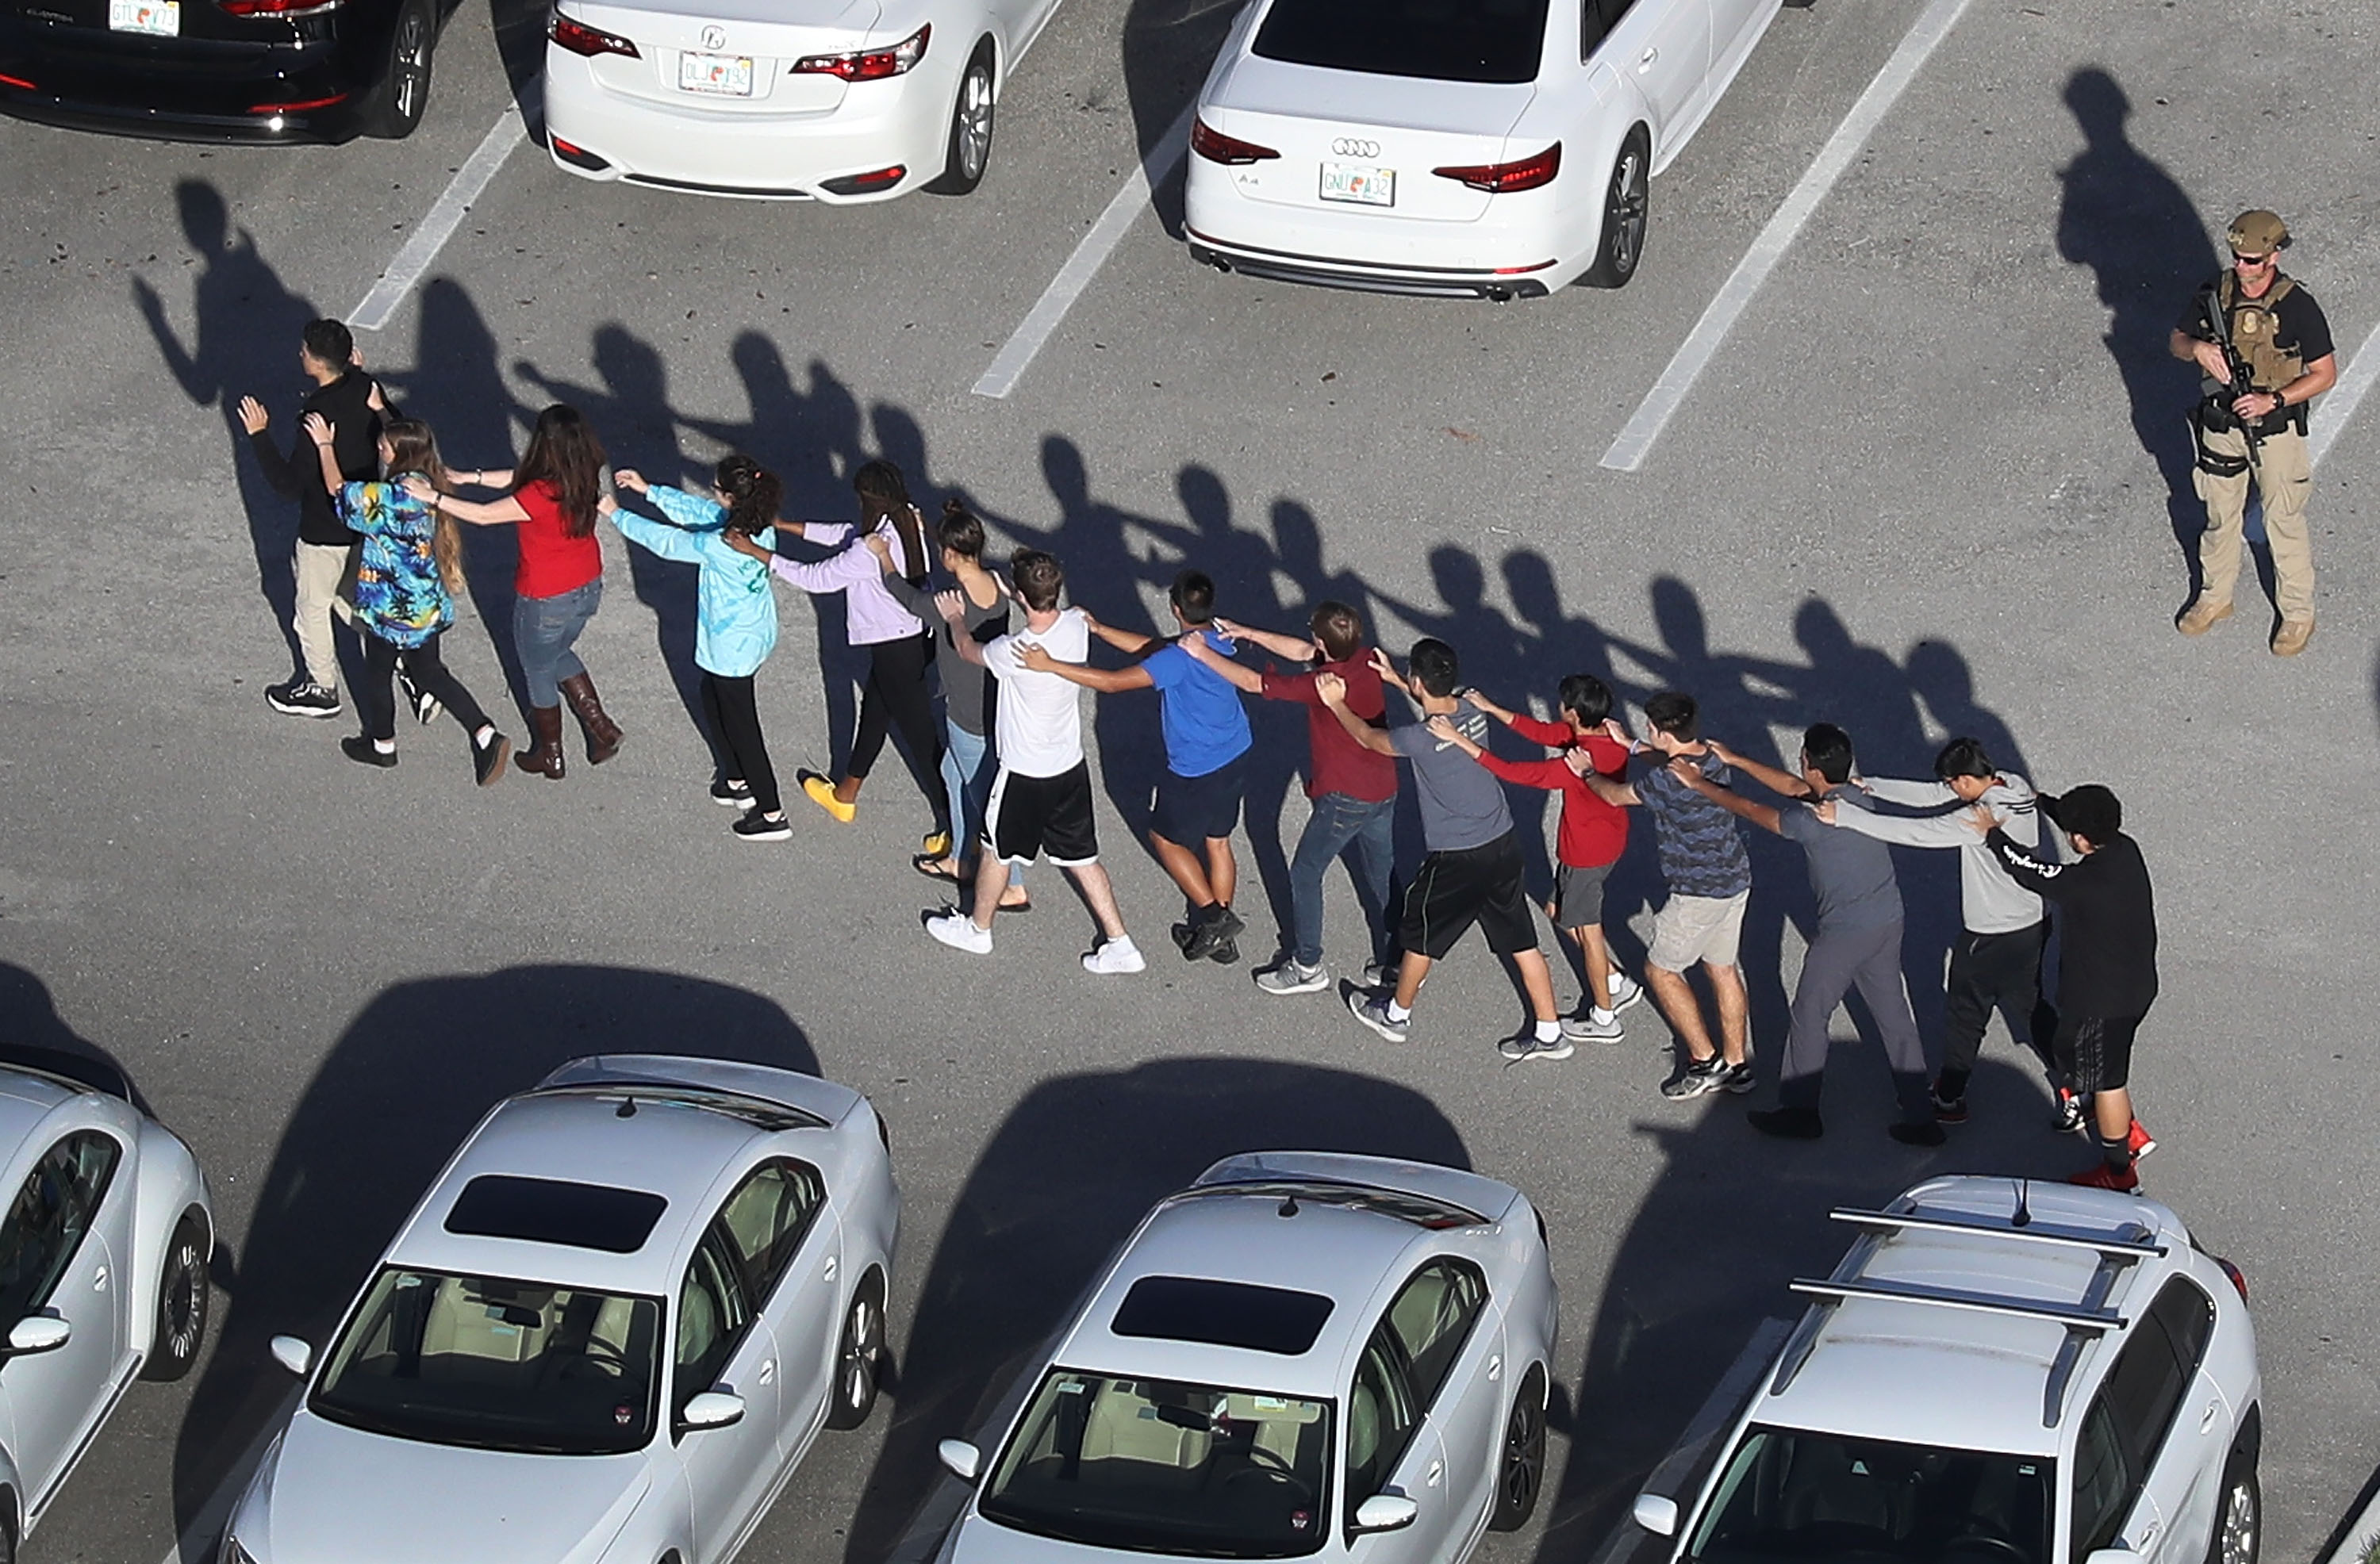 How to stop school shootings without gun control - Big Think